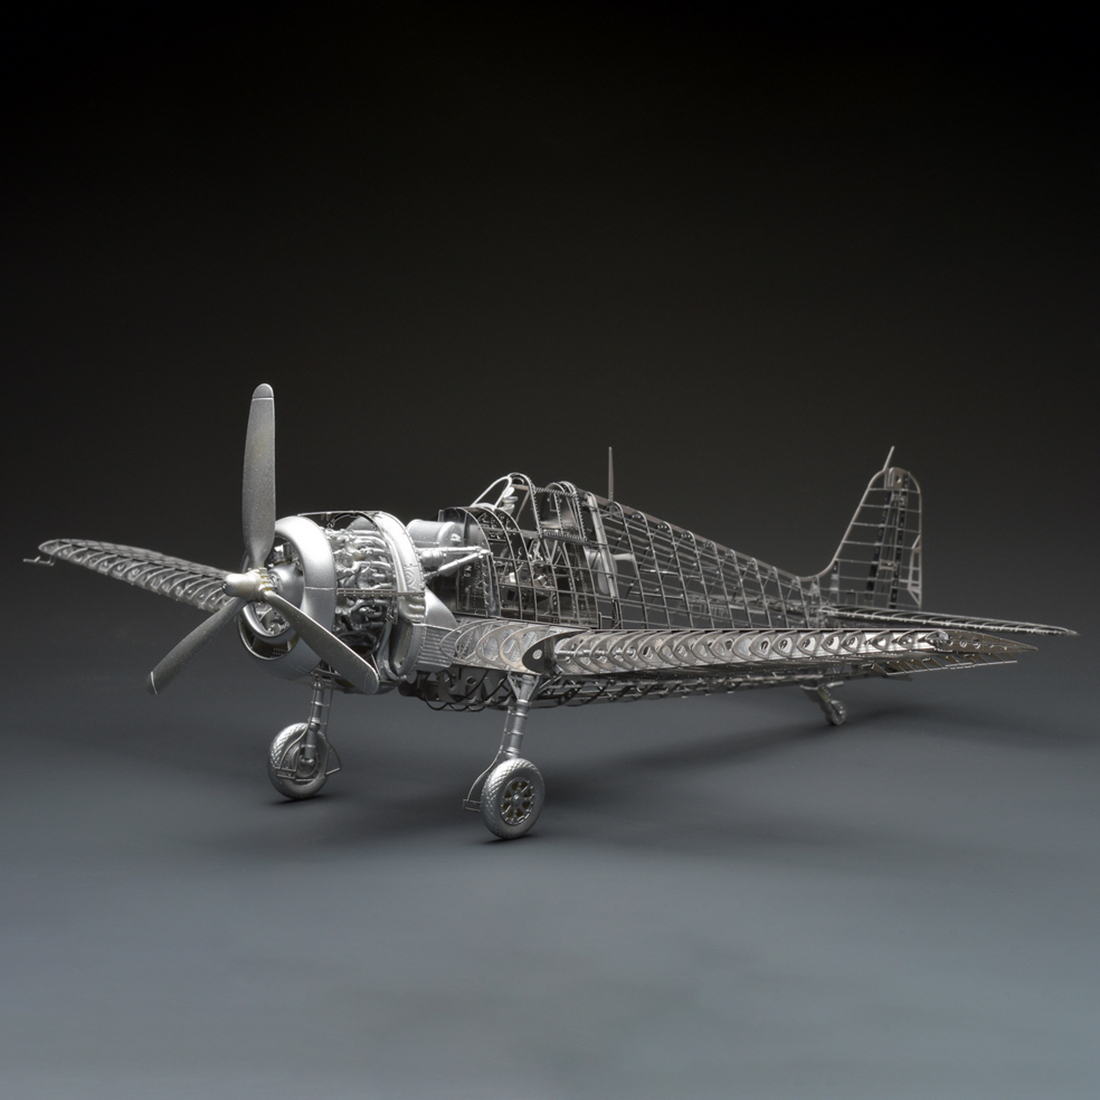 <font><b>1/48</b></font> F6F-5 Aircraft Model Kit Retro Wing Movable Fighter Decoration 3D Metal Assembly Model Educational Toy Gift For Kid Adult image